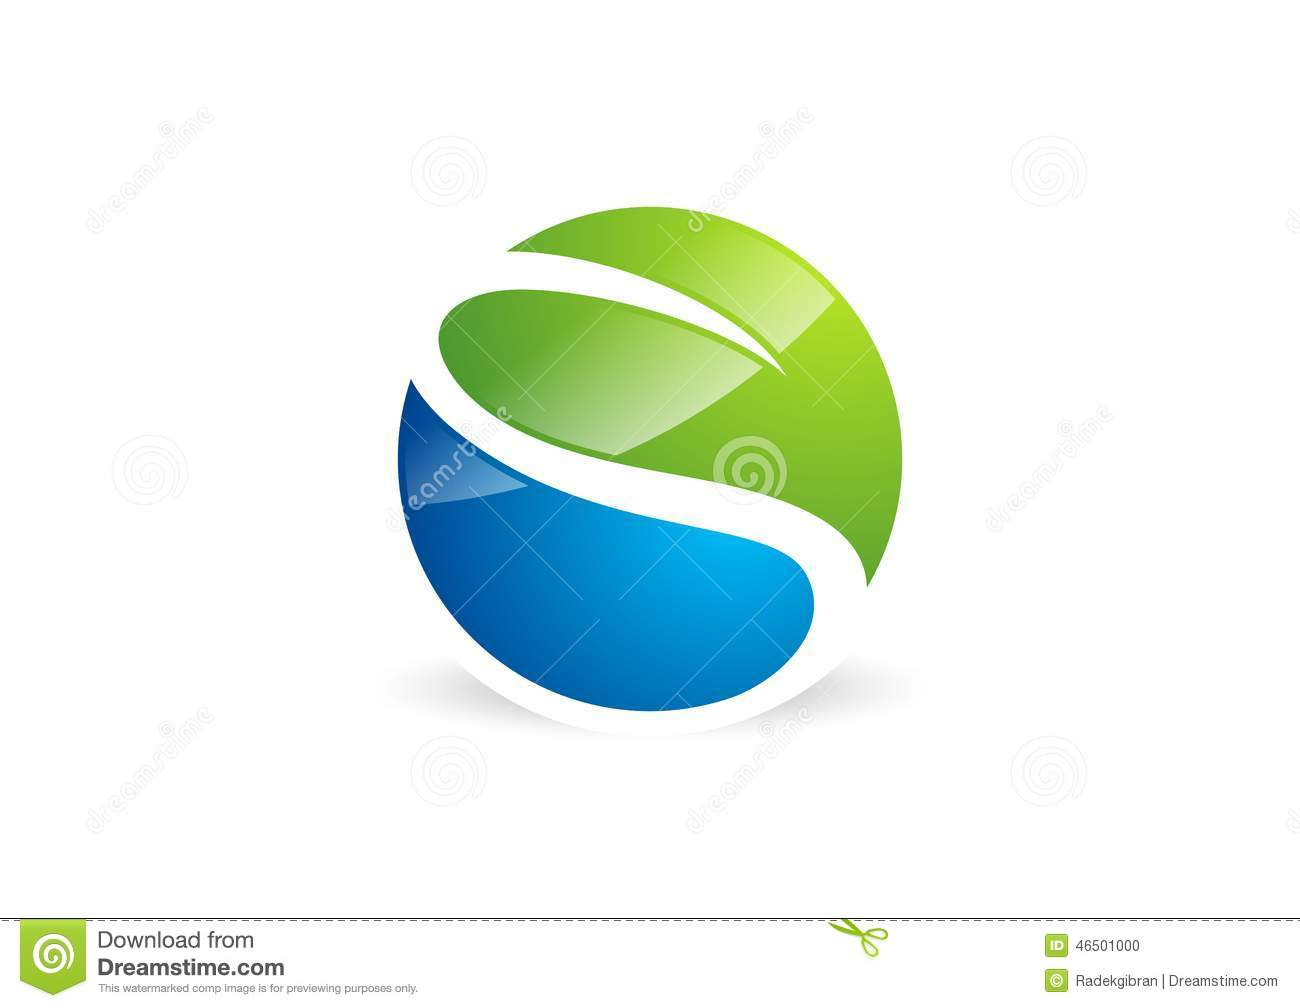 waterdrop,leaf,logo,circle,plant,spring,nature landscape symbol,global nature,letter s icon